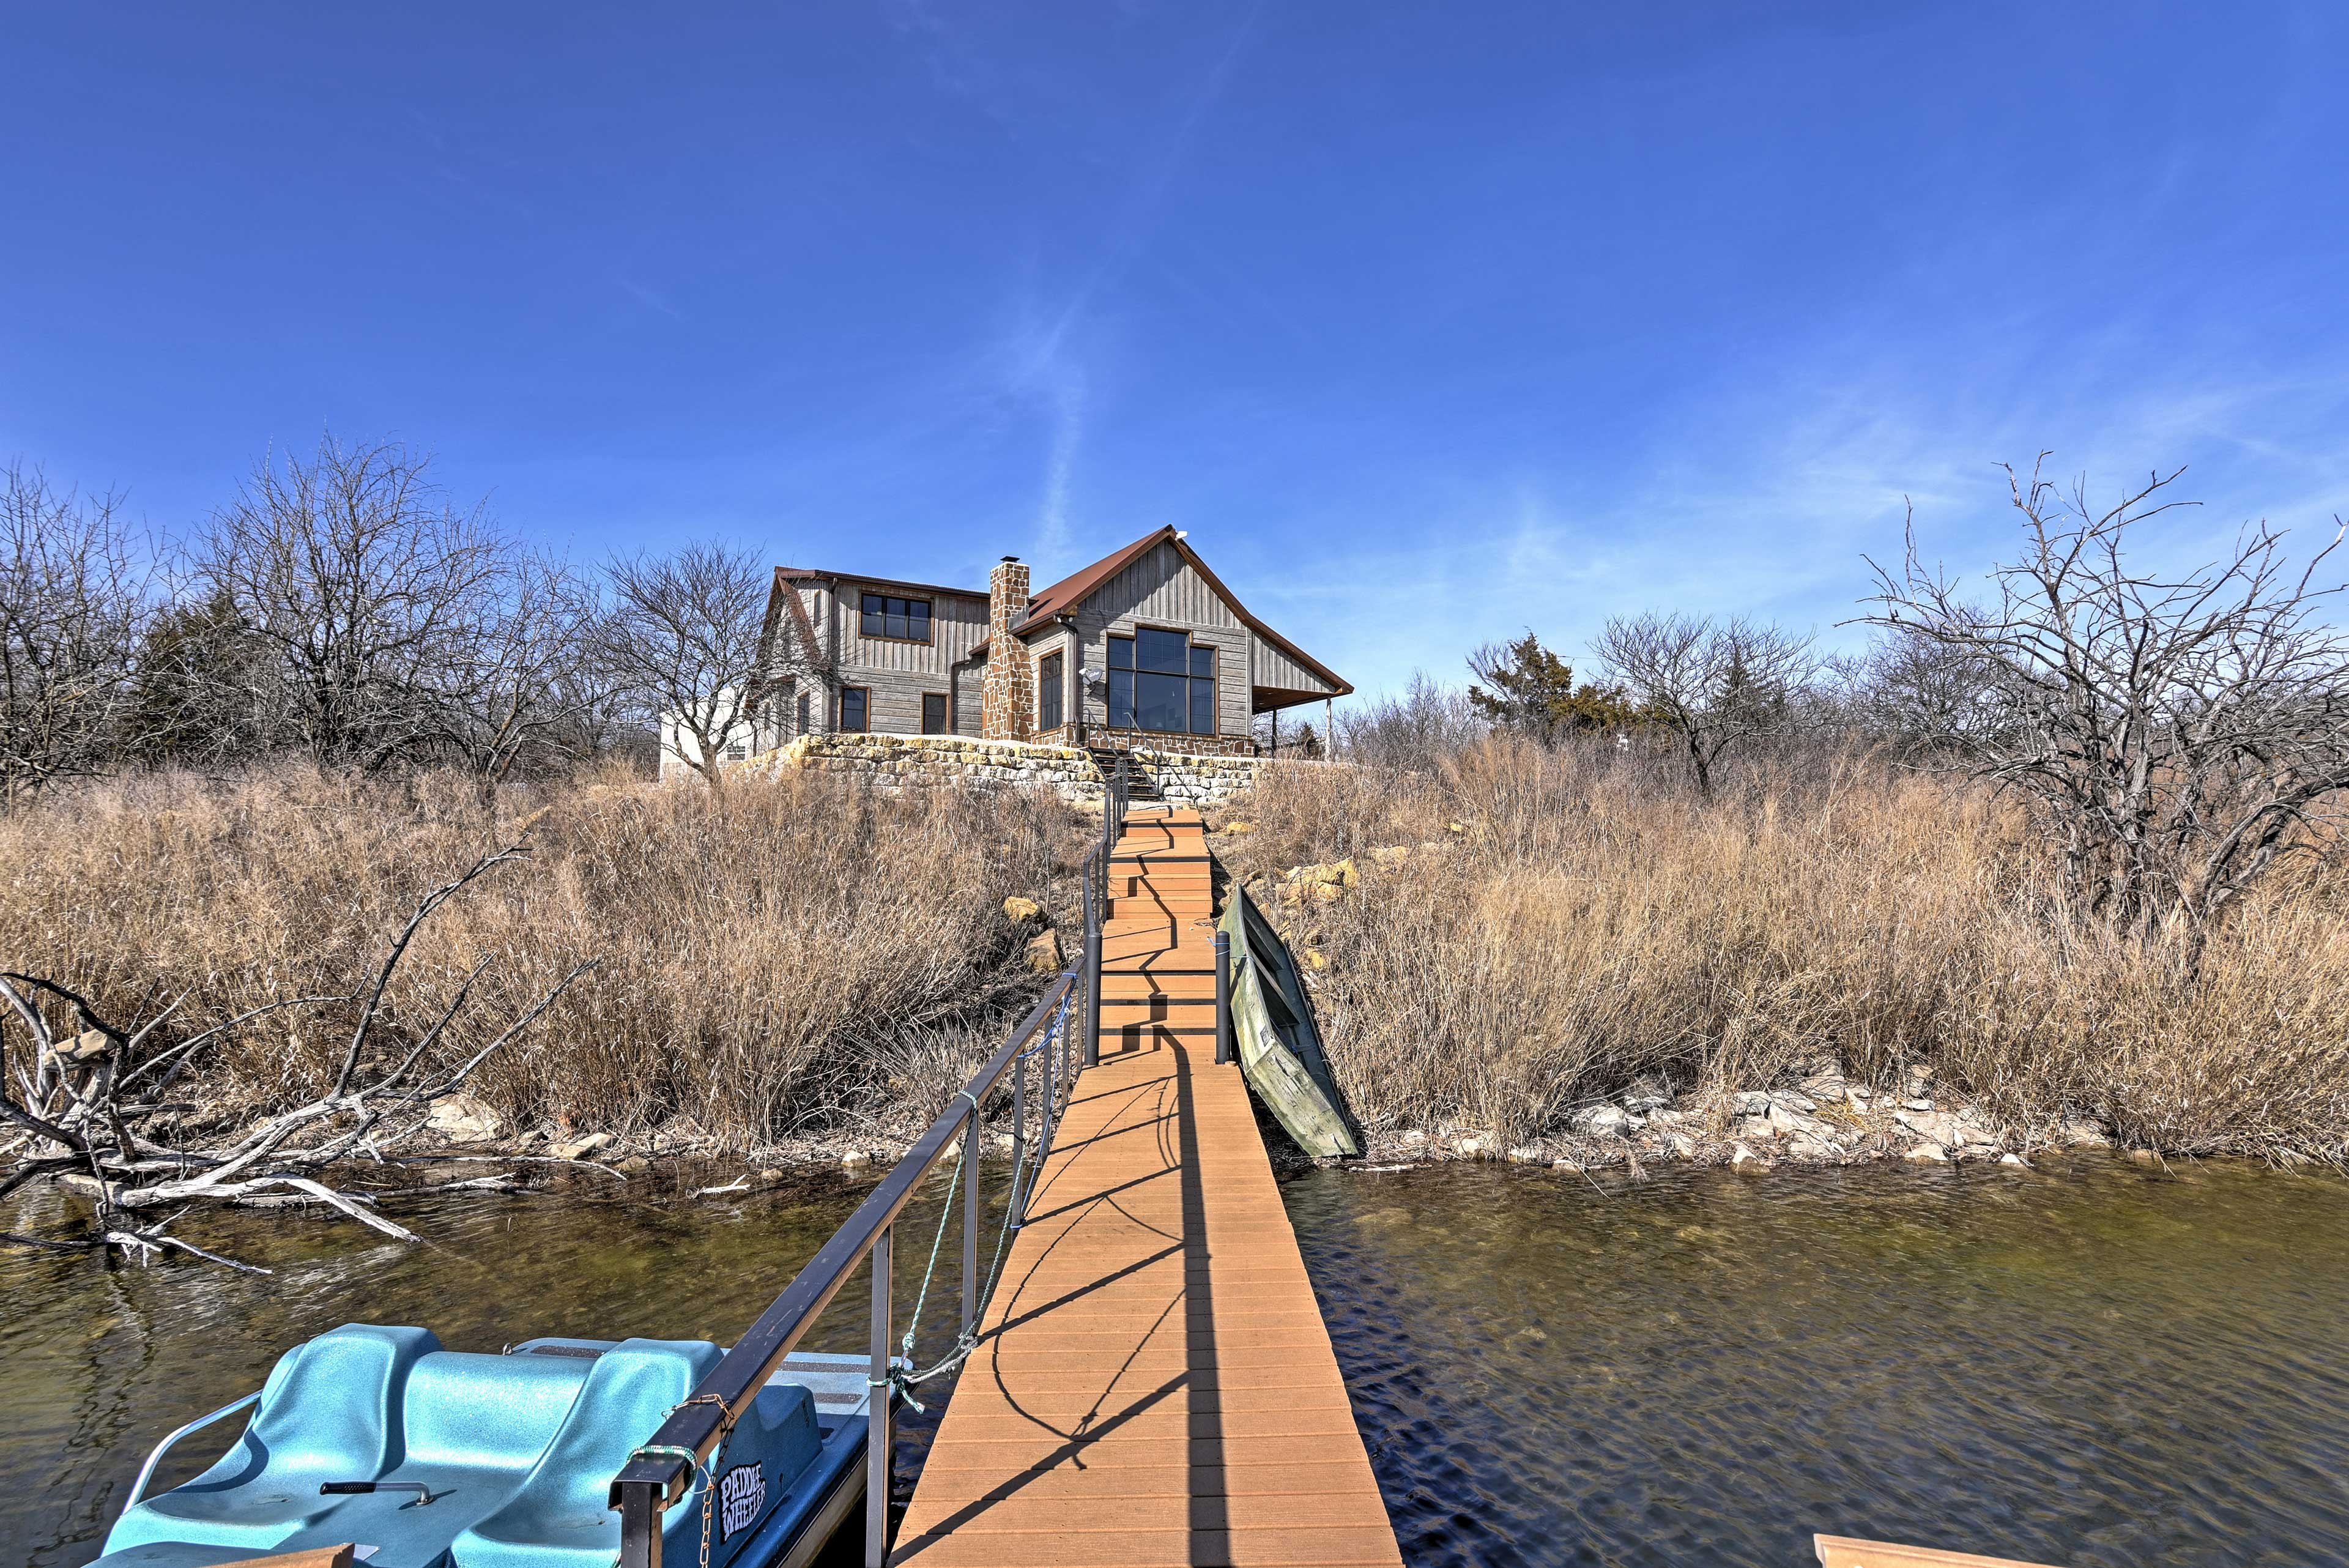 You can't beat the peace and quiet this southern Wichita property offers.